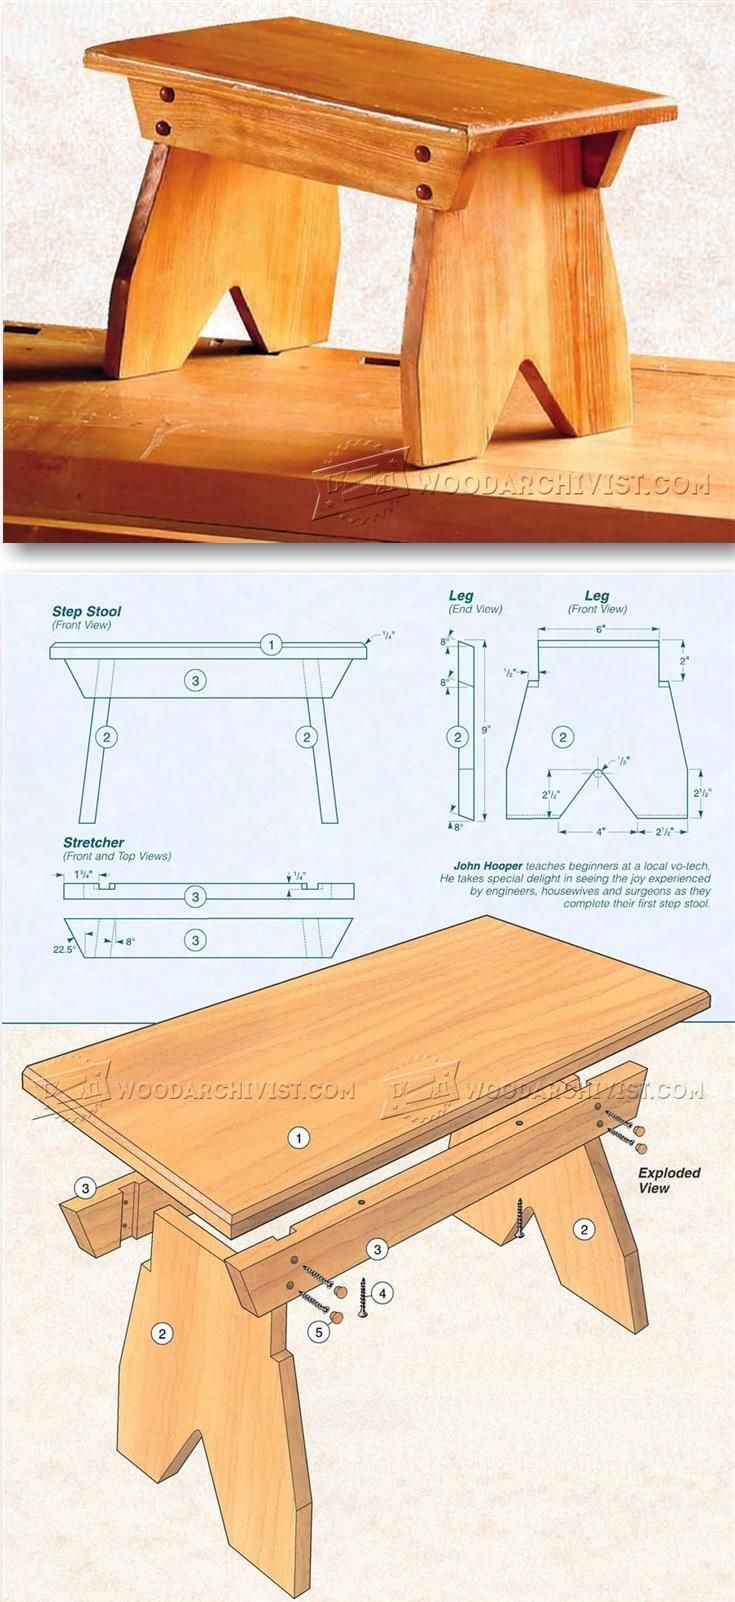 Foot Stool Plans Furniture Plans and